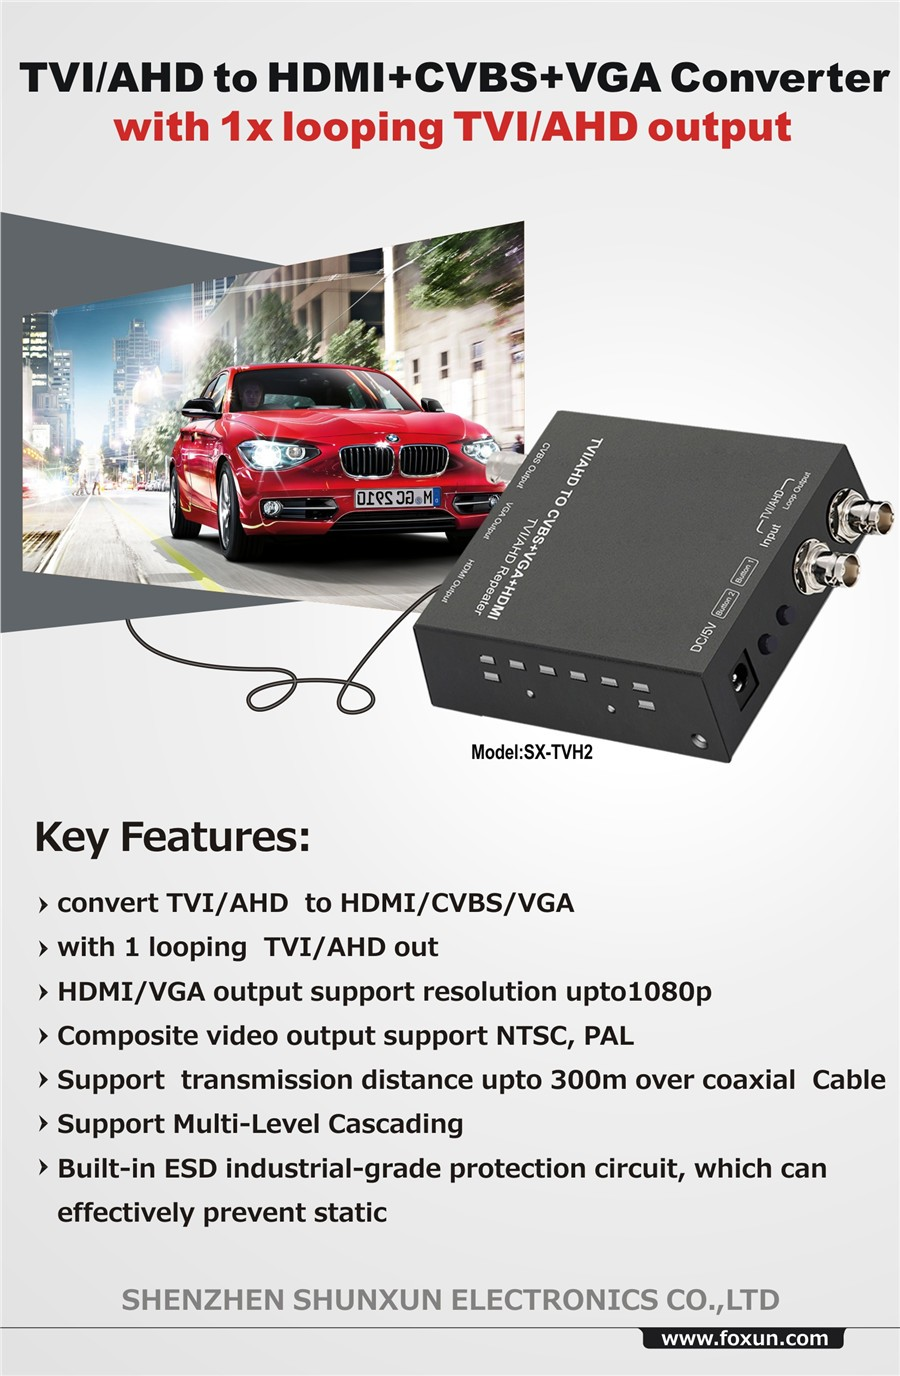 New AHD  300m TVI/AHD to HDMI Converter, with 1xlooping TVI/AHD output